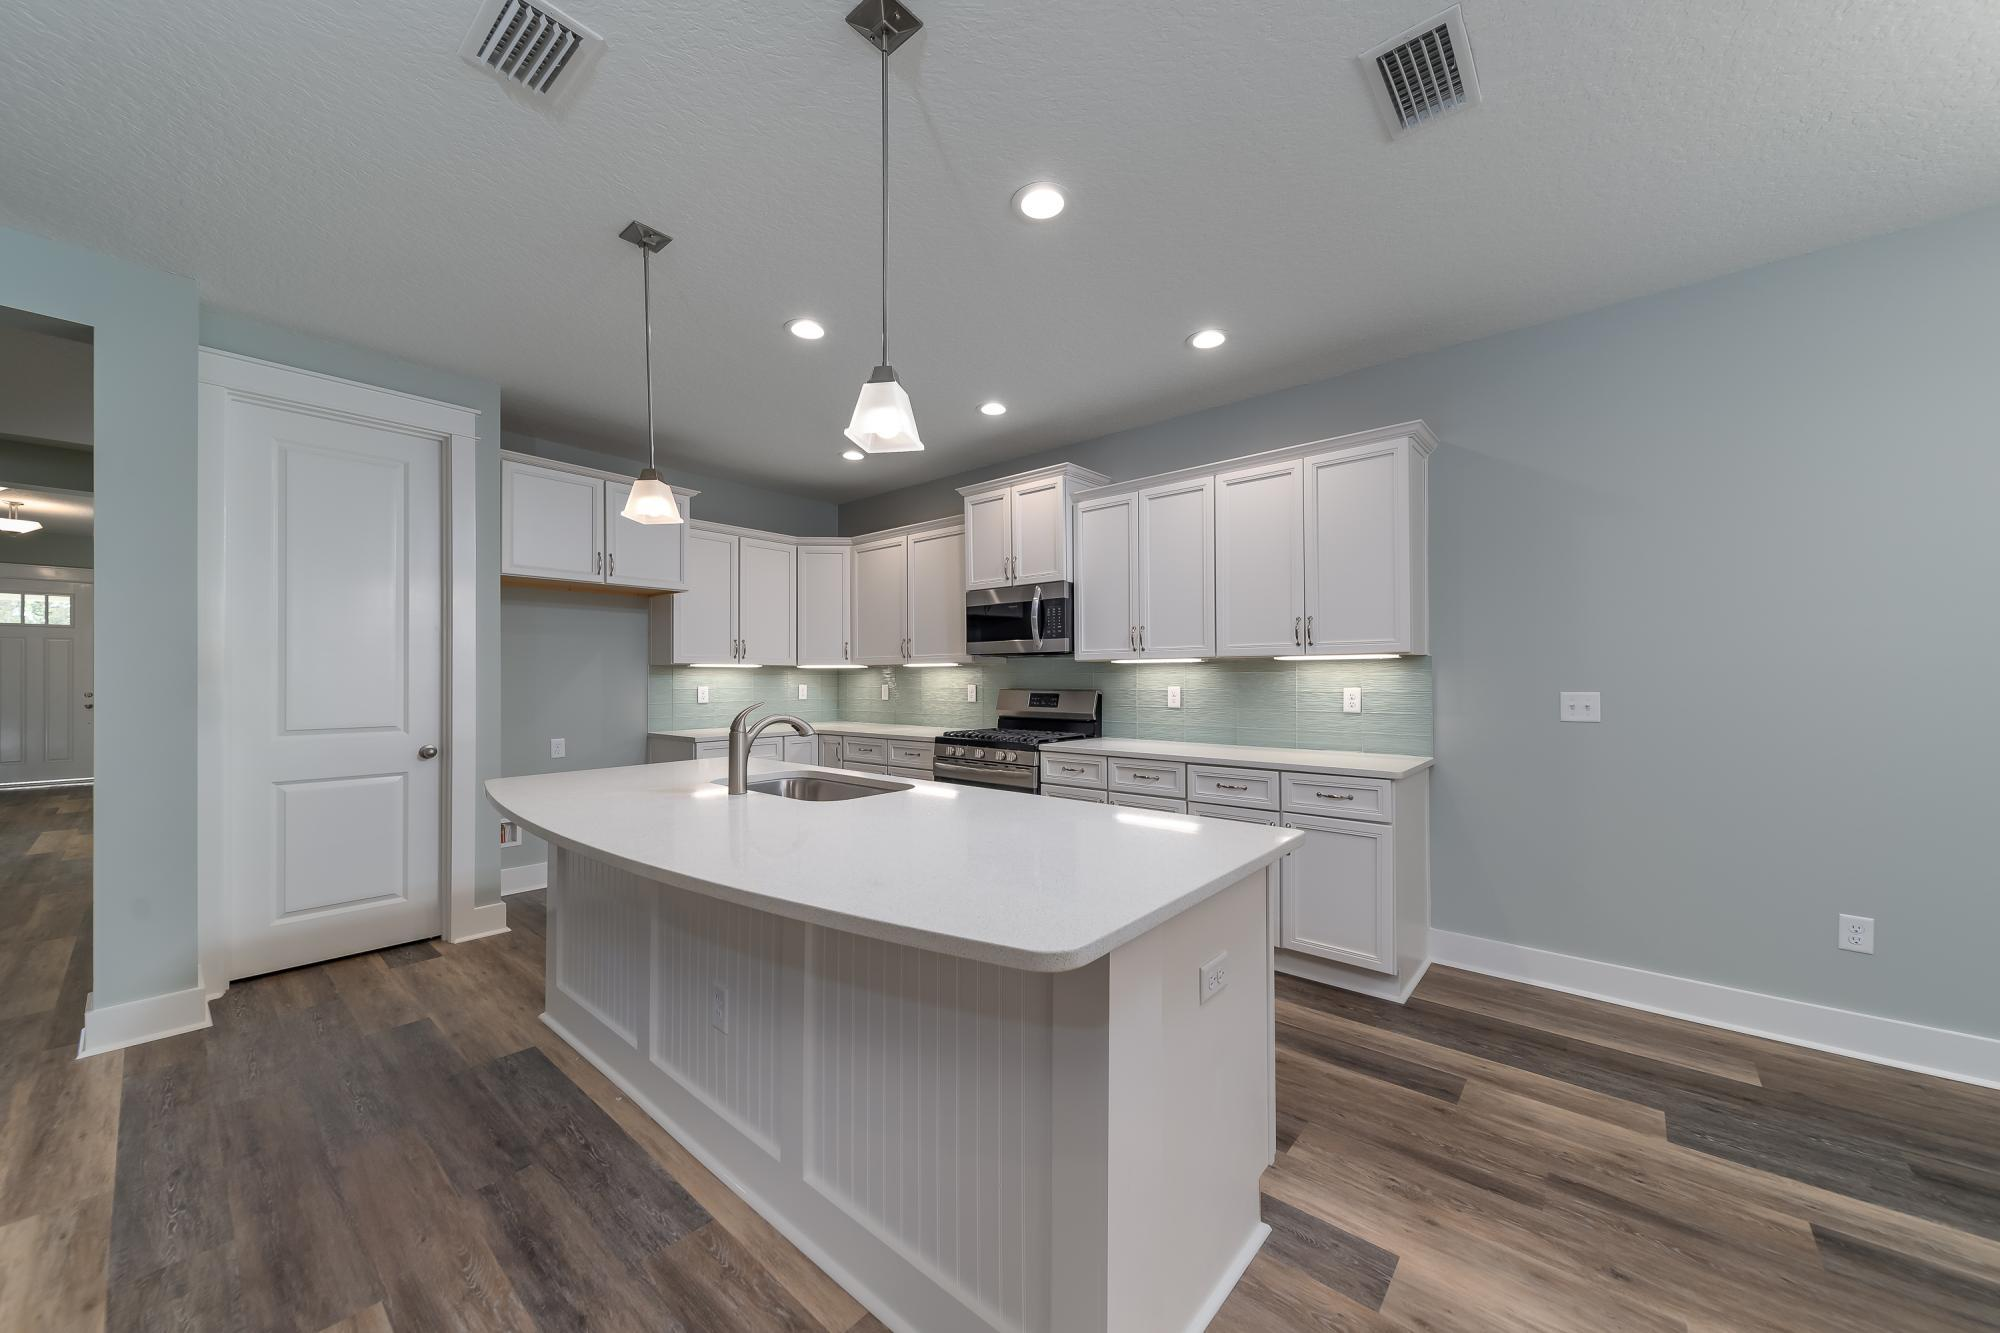 Kitchen featured in the Crevalle By Samuel Taylor Homes in Panama City, FL